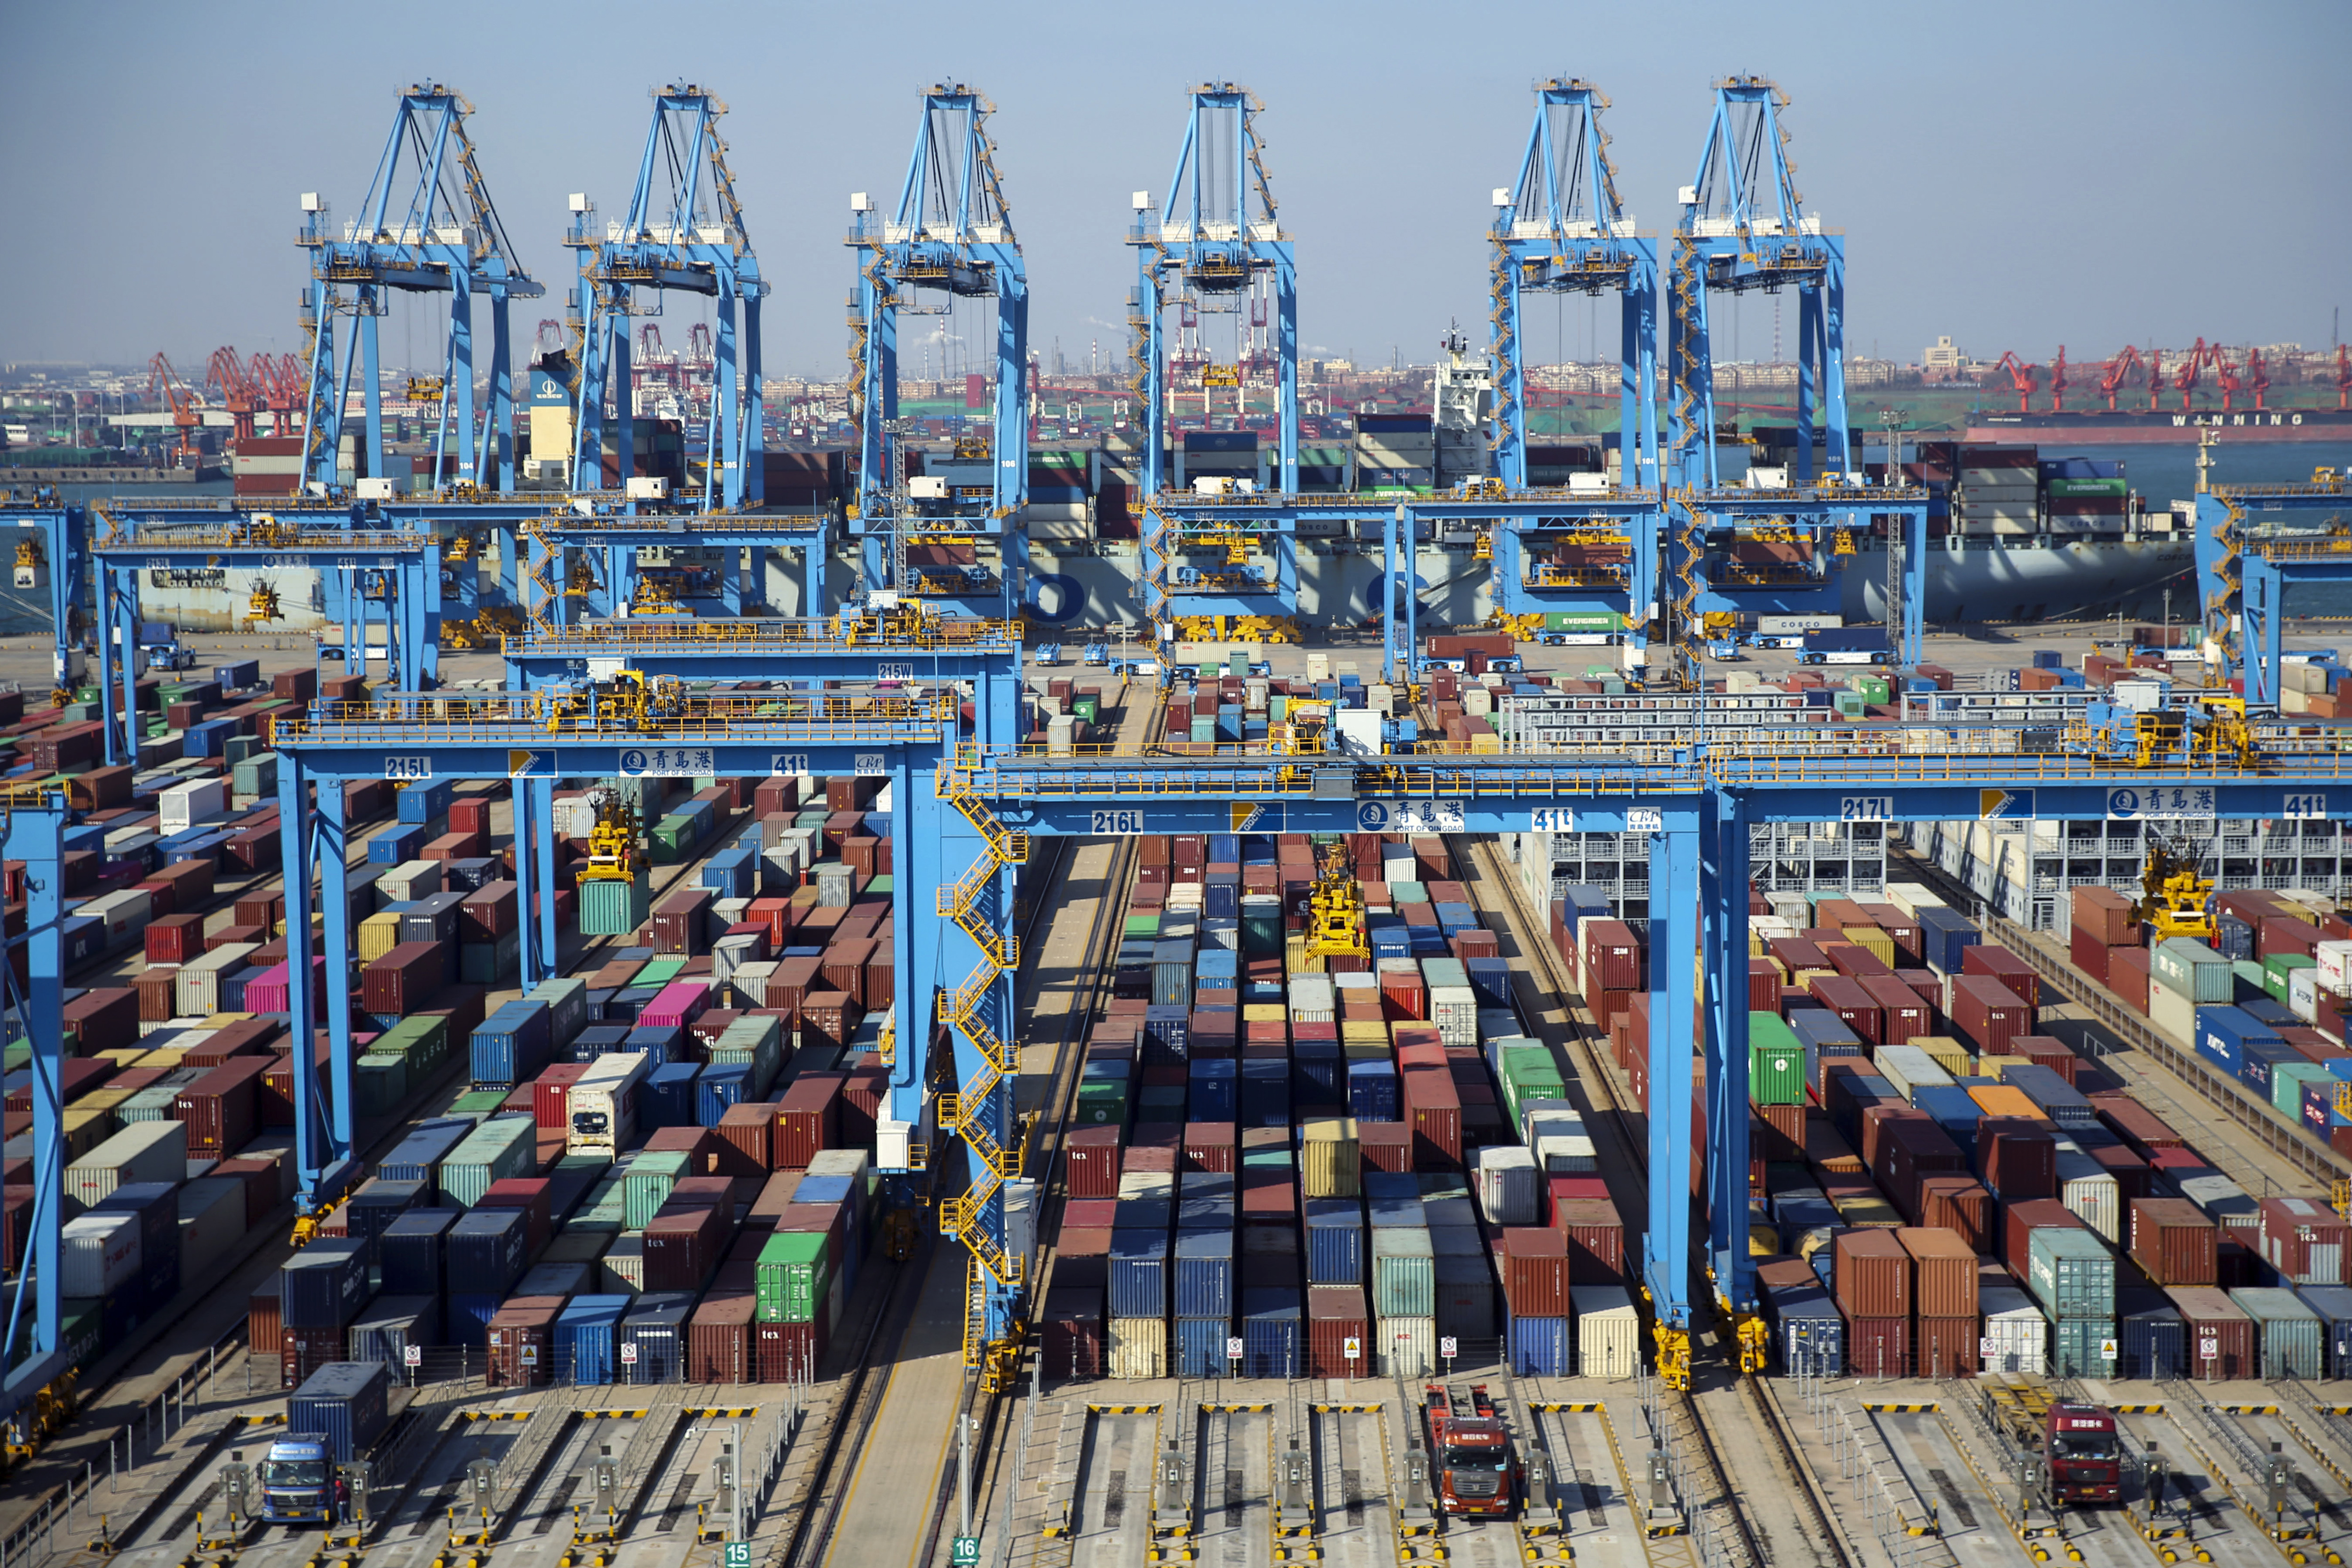 Trucks load containers at the automated container dockyard in Qingdao in east China's Shandong province on Nov. 28, 2019.